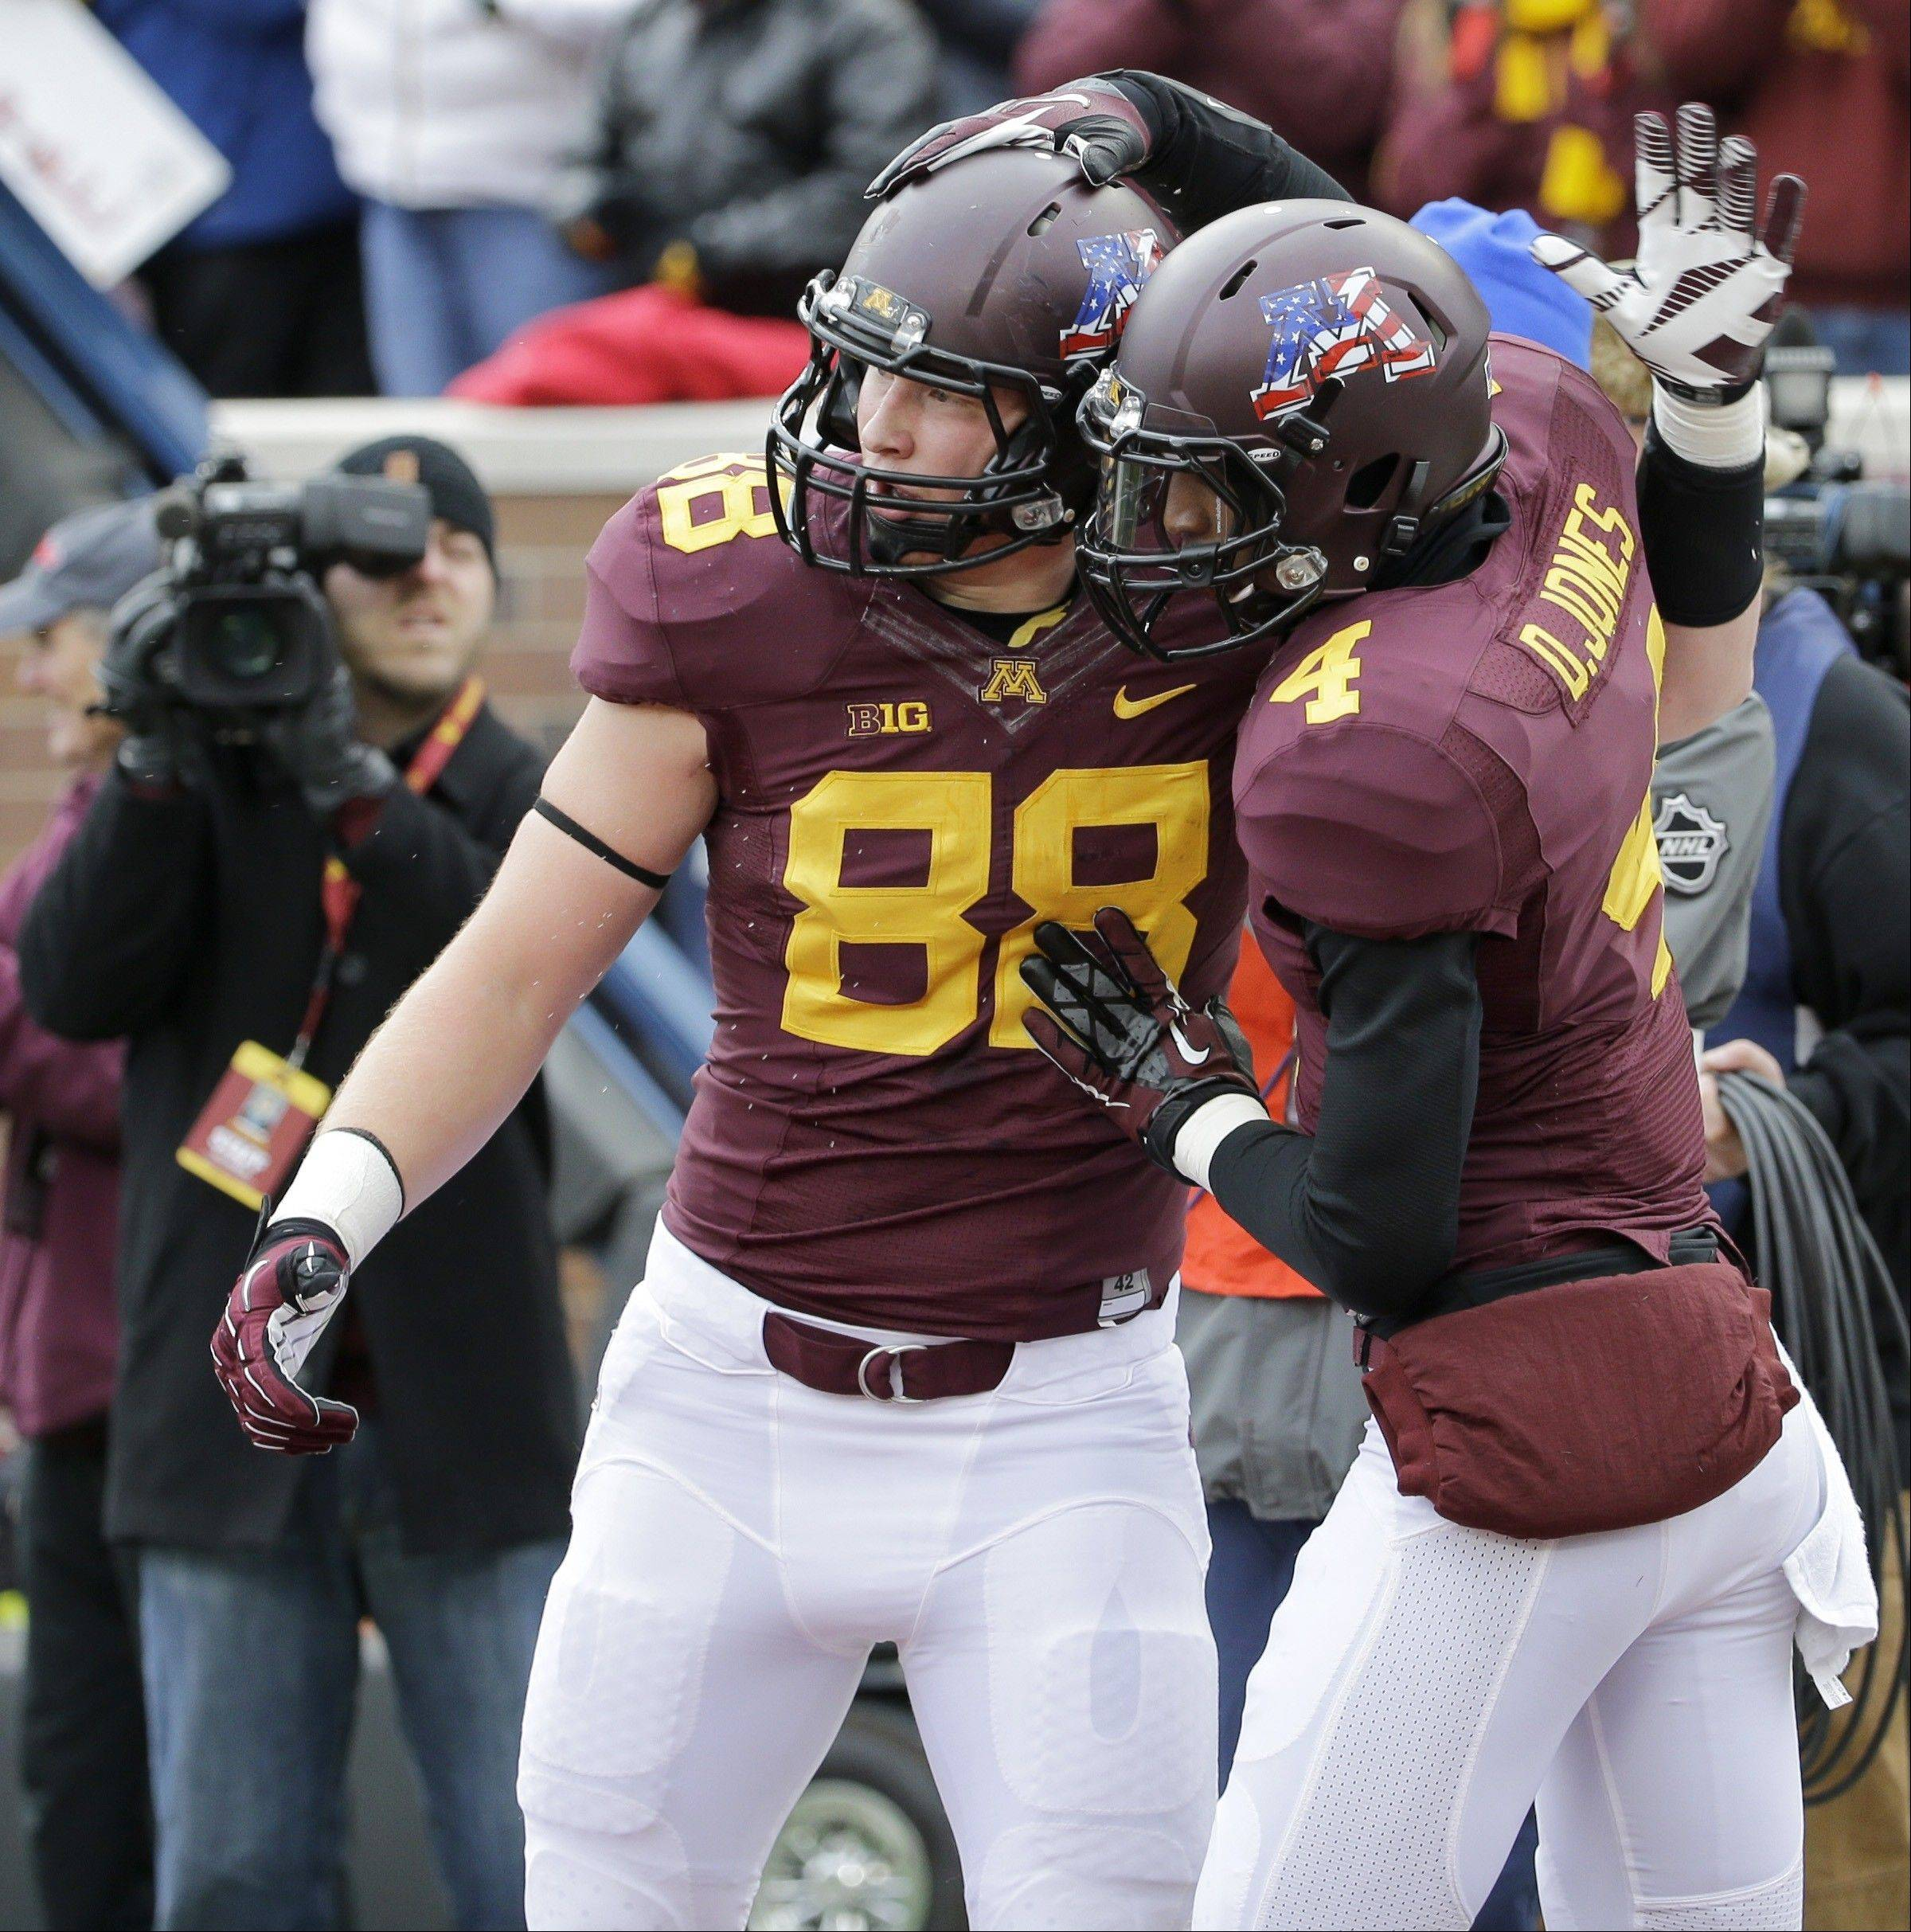 Minnesota tight end Maxx Williams (88) and Donovahn Jones (4) celebrate Williams' touchdown during the second quarter of an NCAA college football game against Penn State in Minneapolis, Saturday, Nov. 9, 2013. (AP Photo/Ann Heisenfelt)